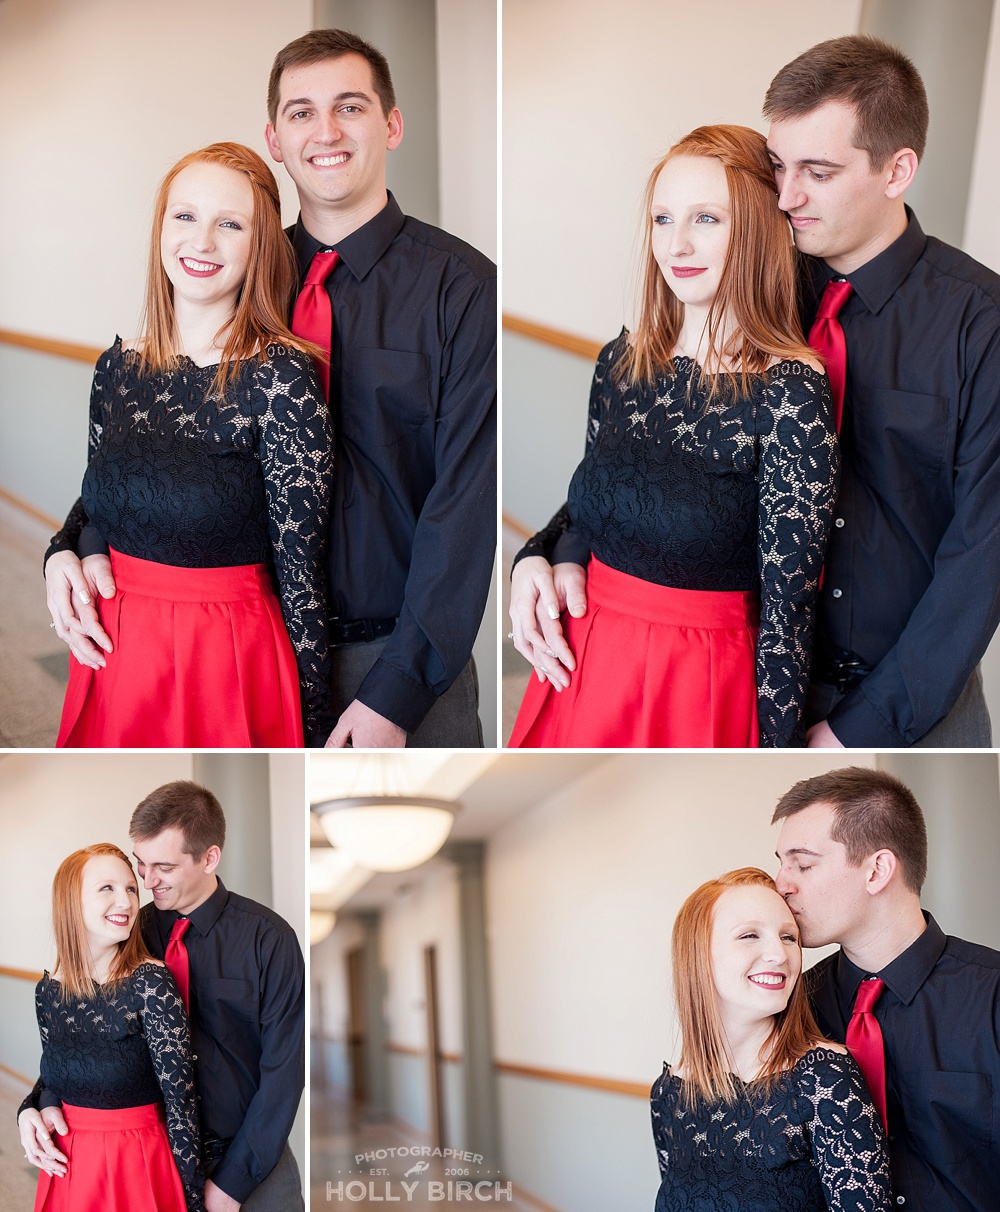 weekday-courthouse-wedding-photographer-champaign-urbana_3165.jpg